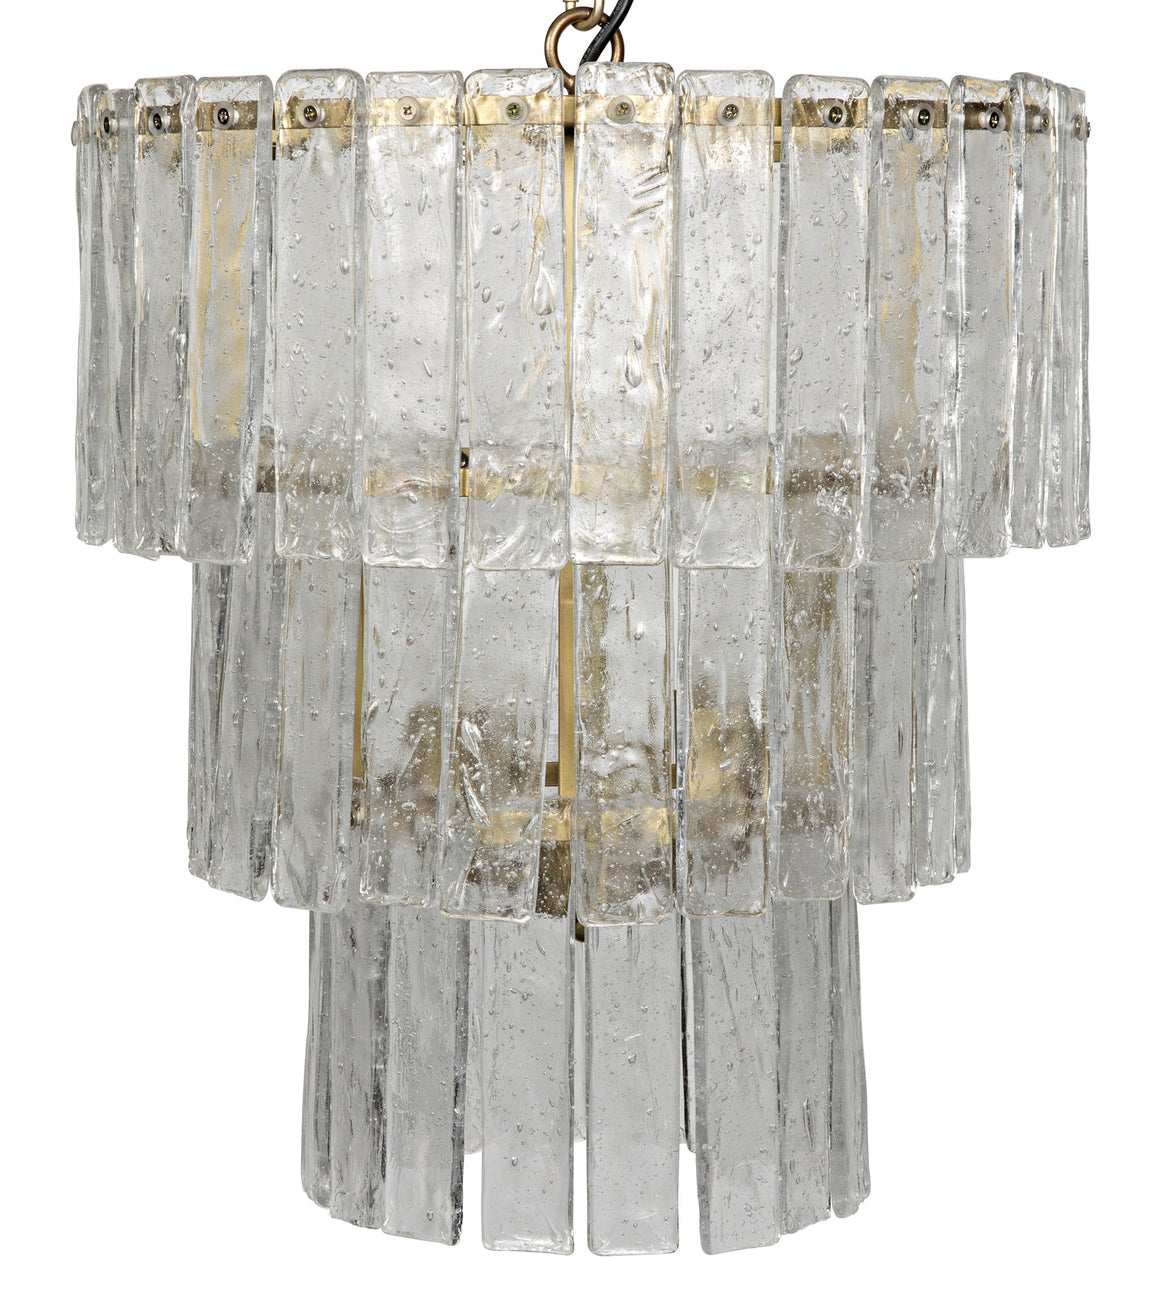 Noir Bruna Glass Chandelier - Antique Brass